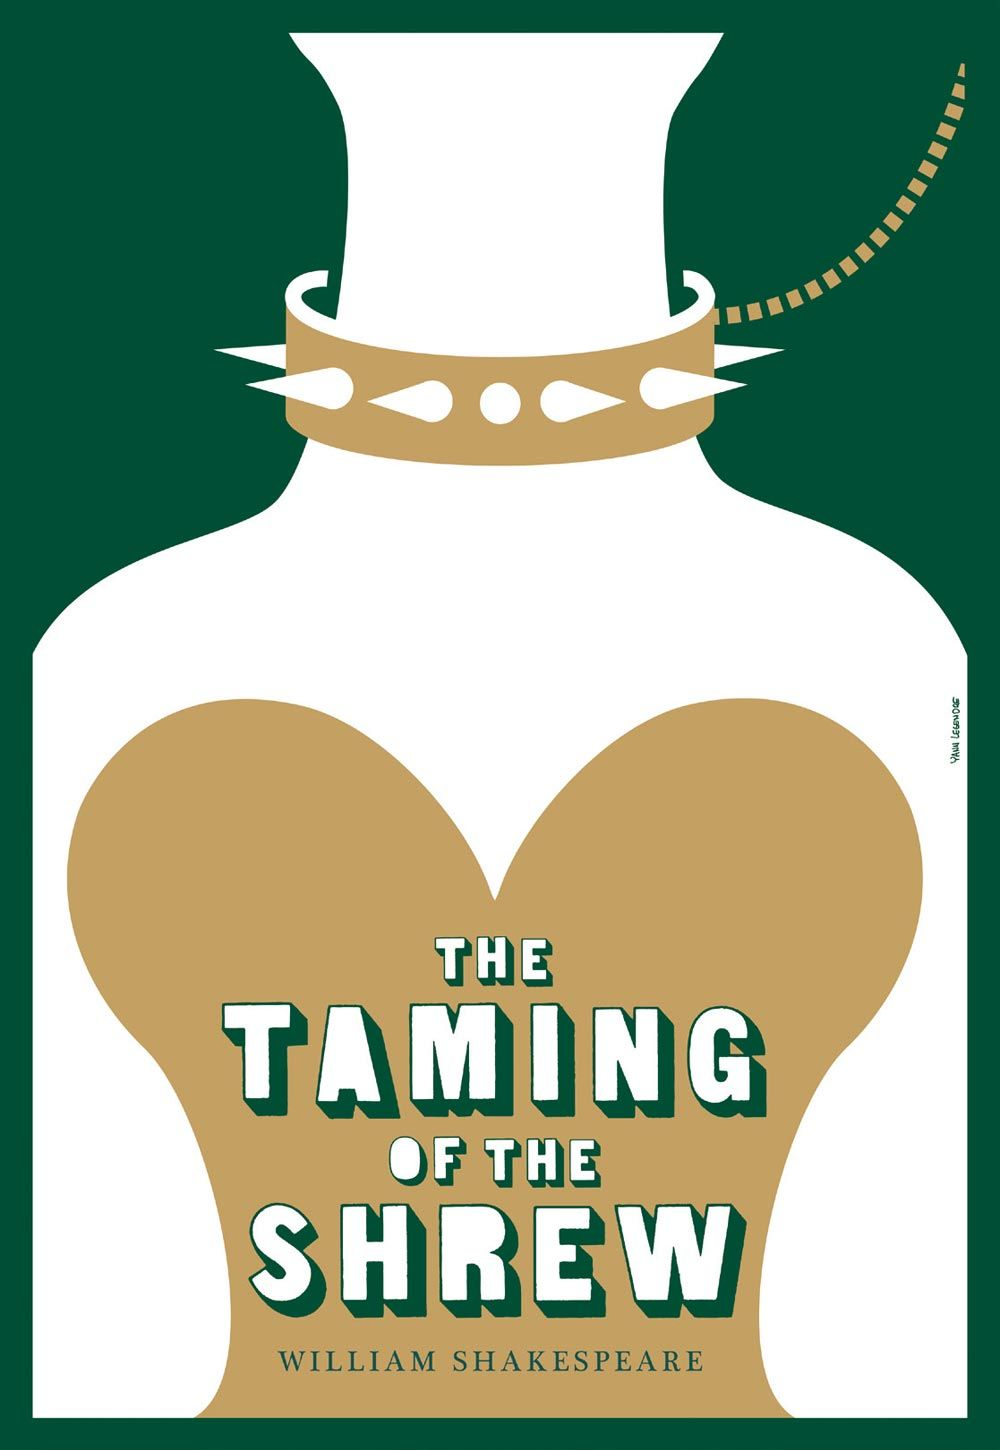 yann legendre the taming of the shrew poster shakespeare yann legendre the taming of the shrew